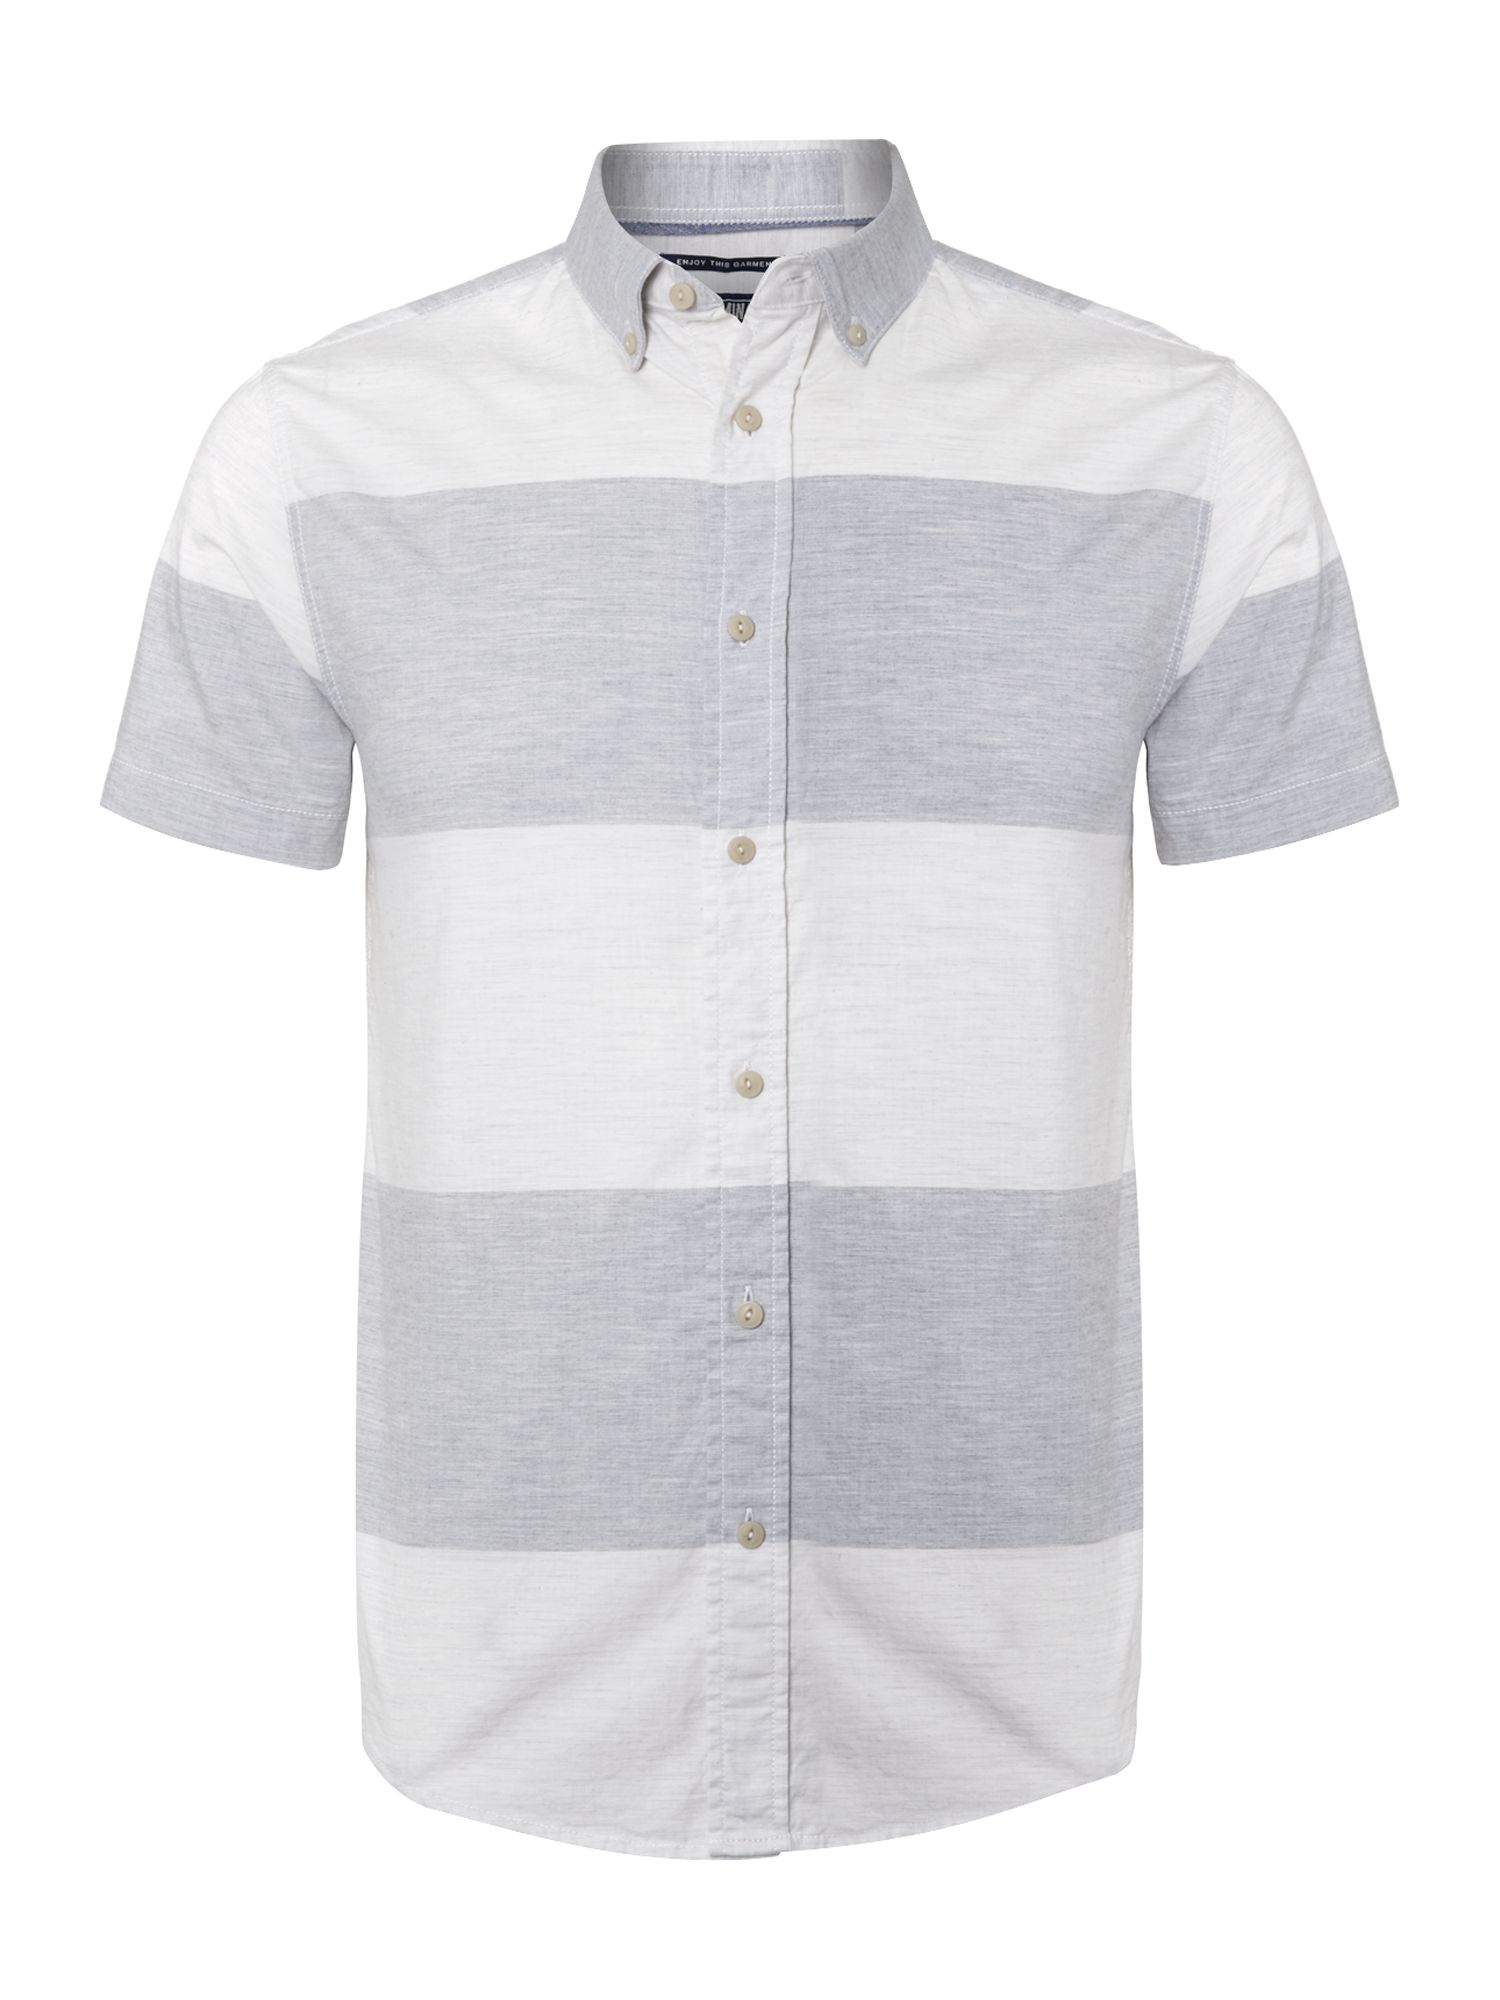 Block striped short sleeved shirt